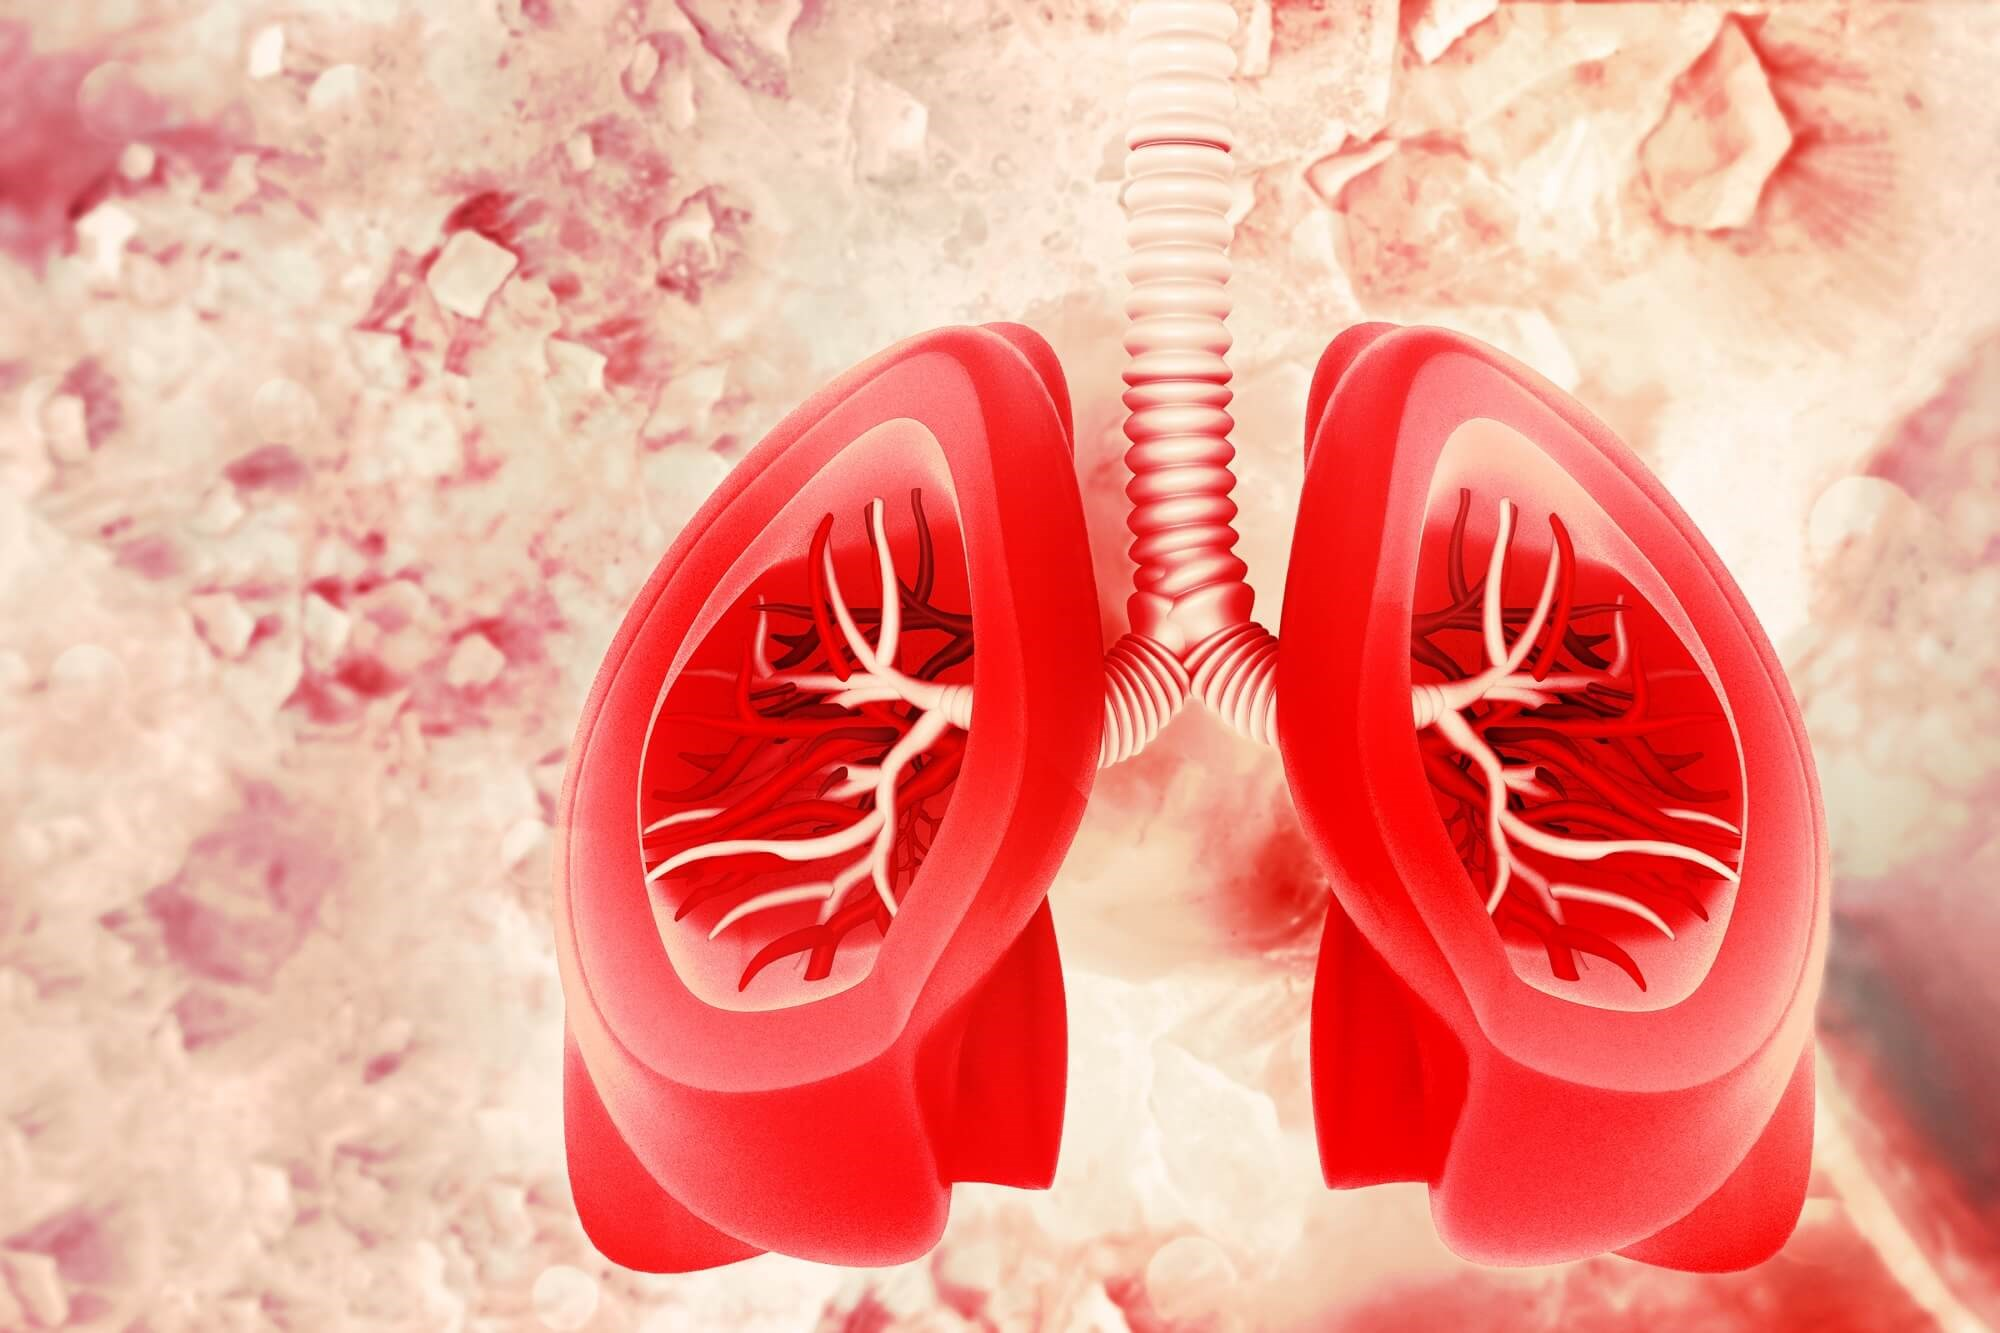 Significant improvements were reported in total and regional pulmonary microvascular blood flow.